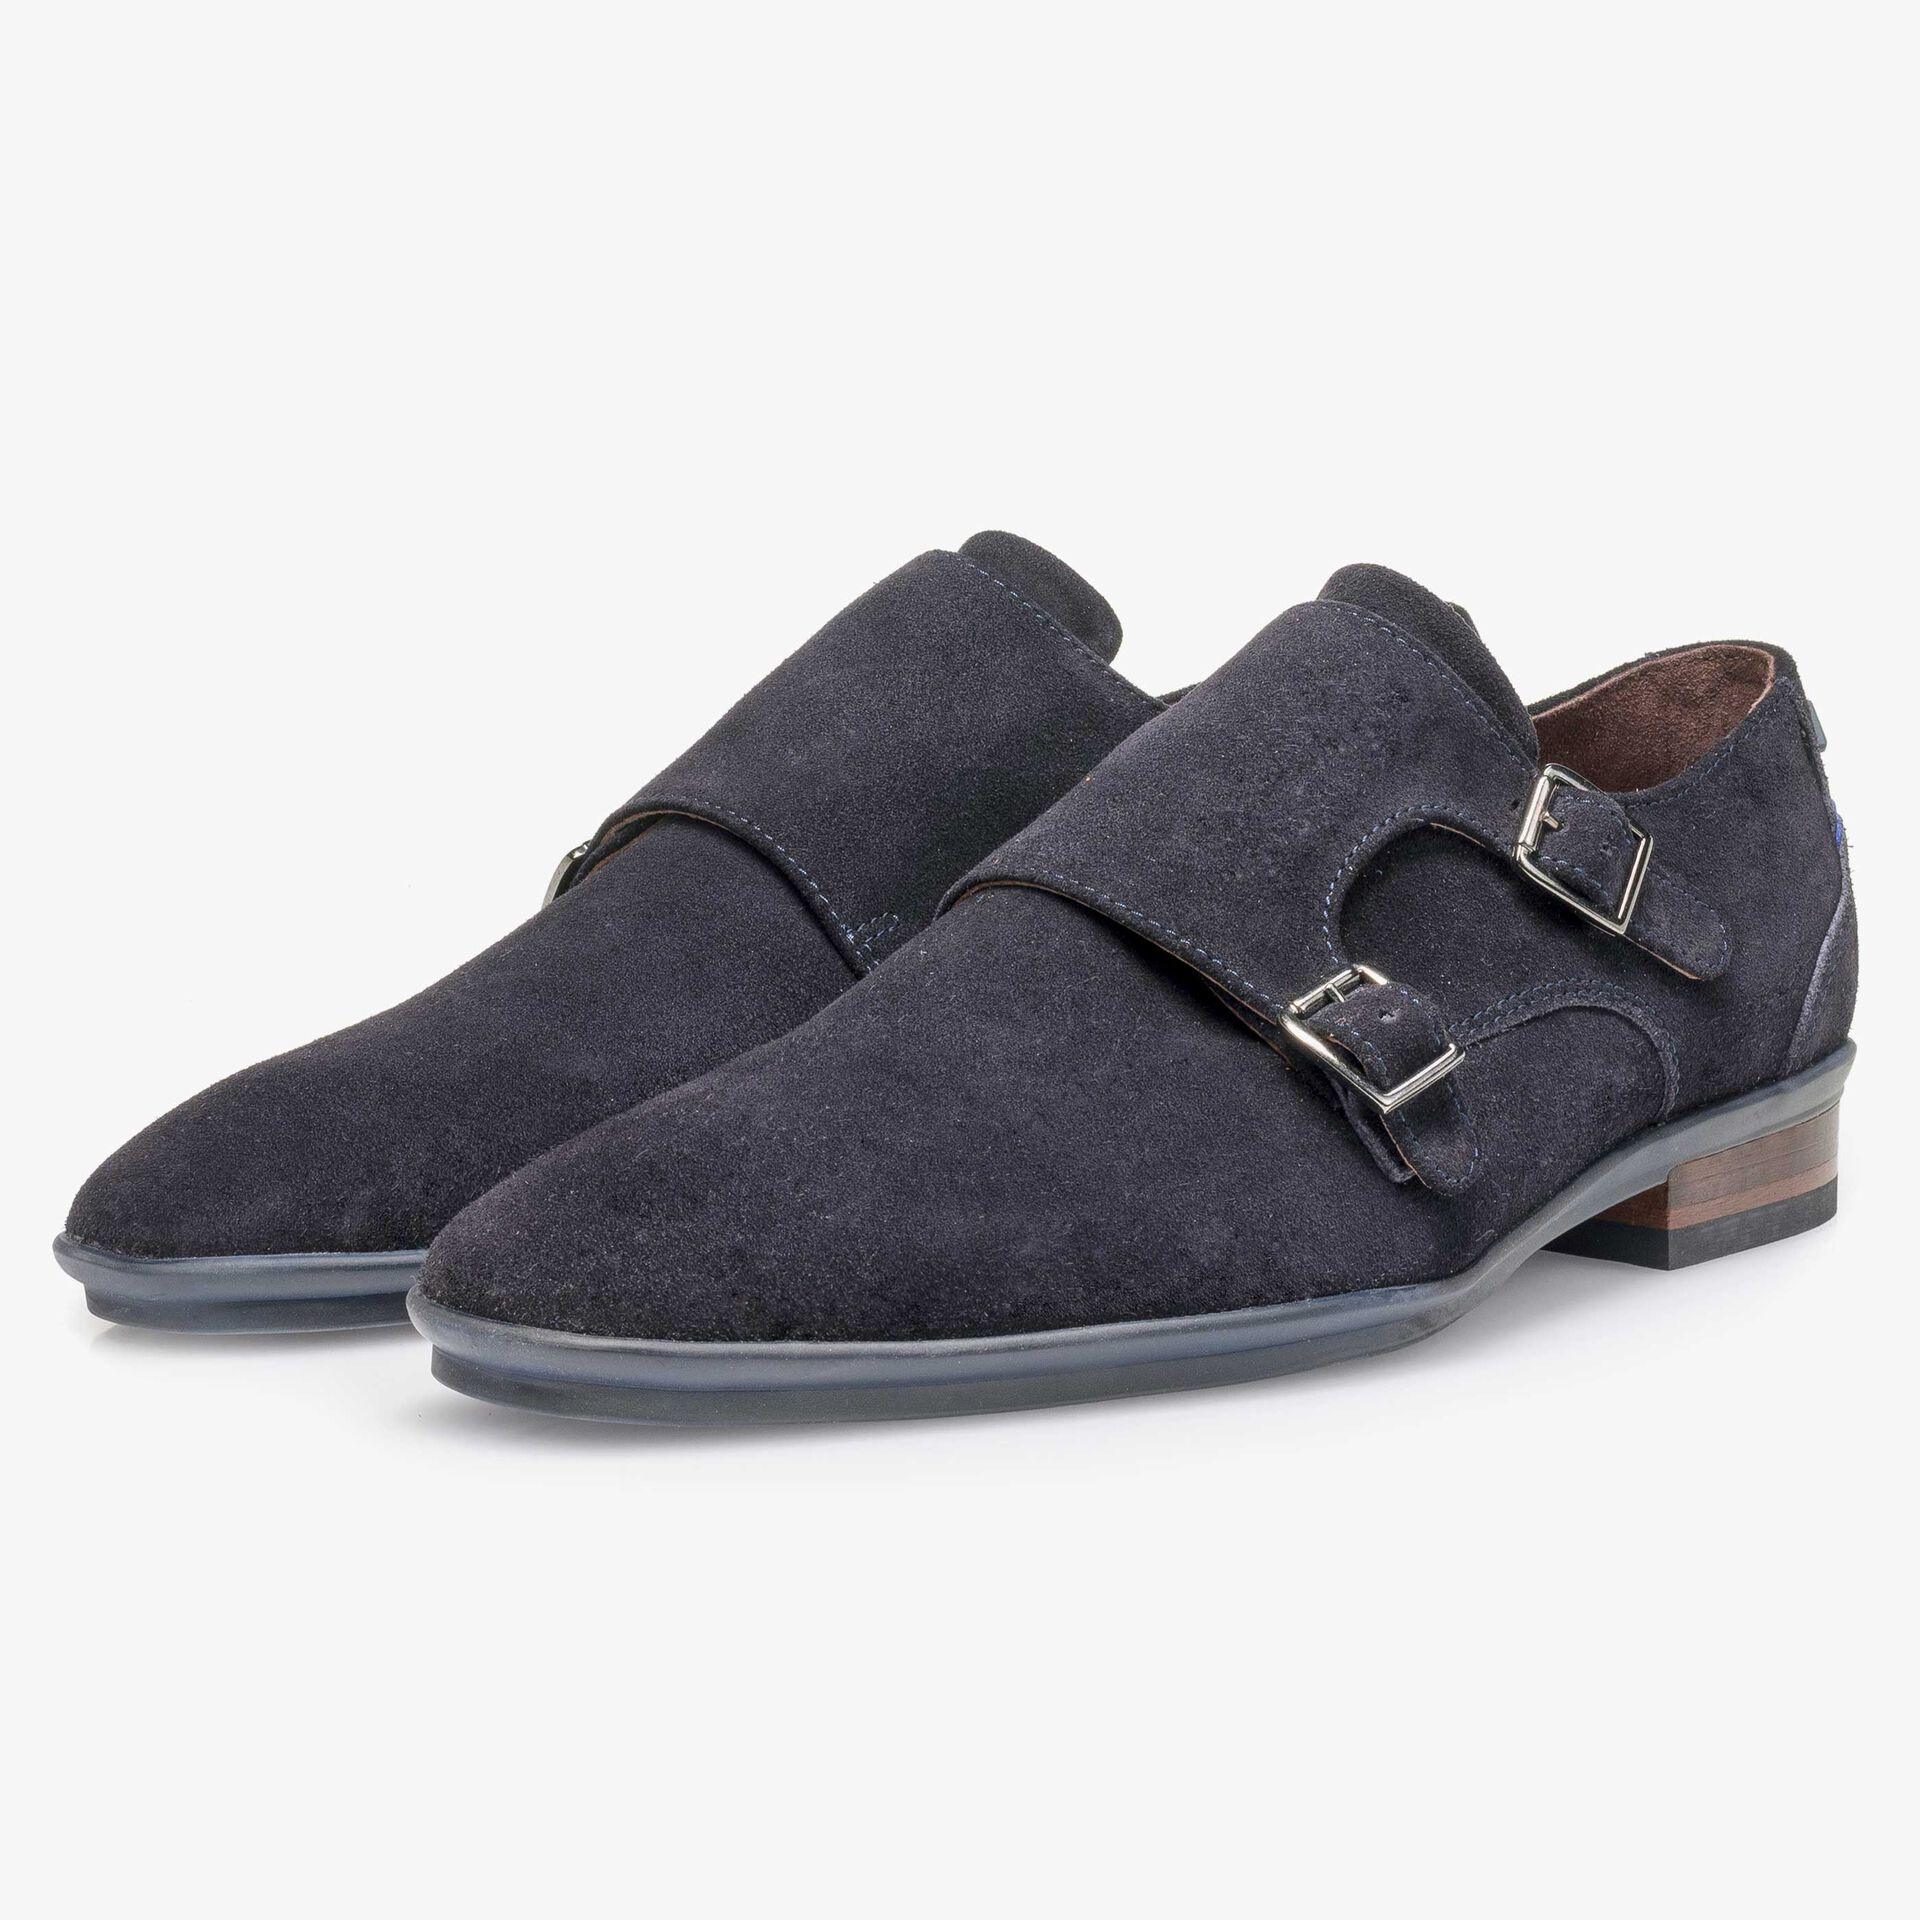 Blue calf suede leather double buckle monk strap